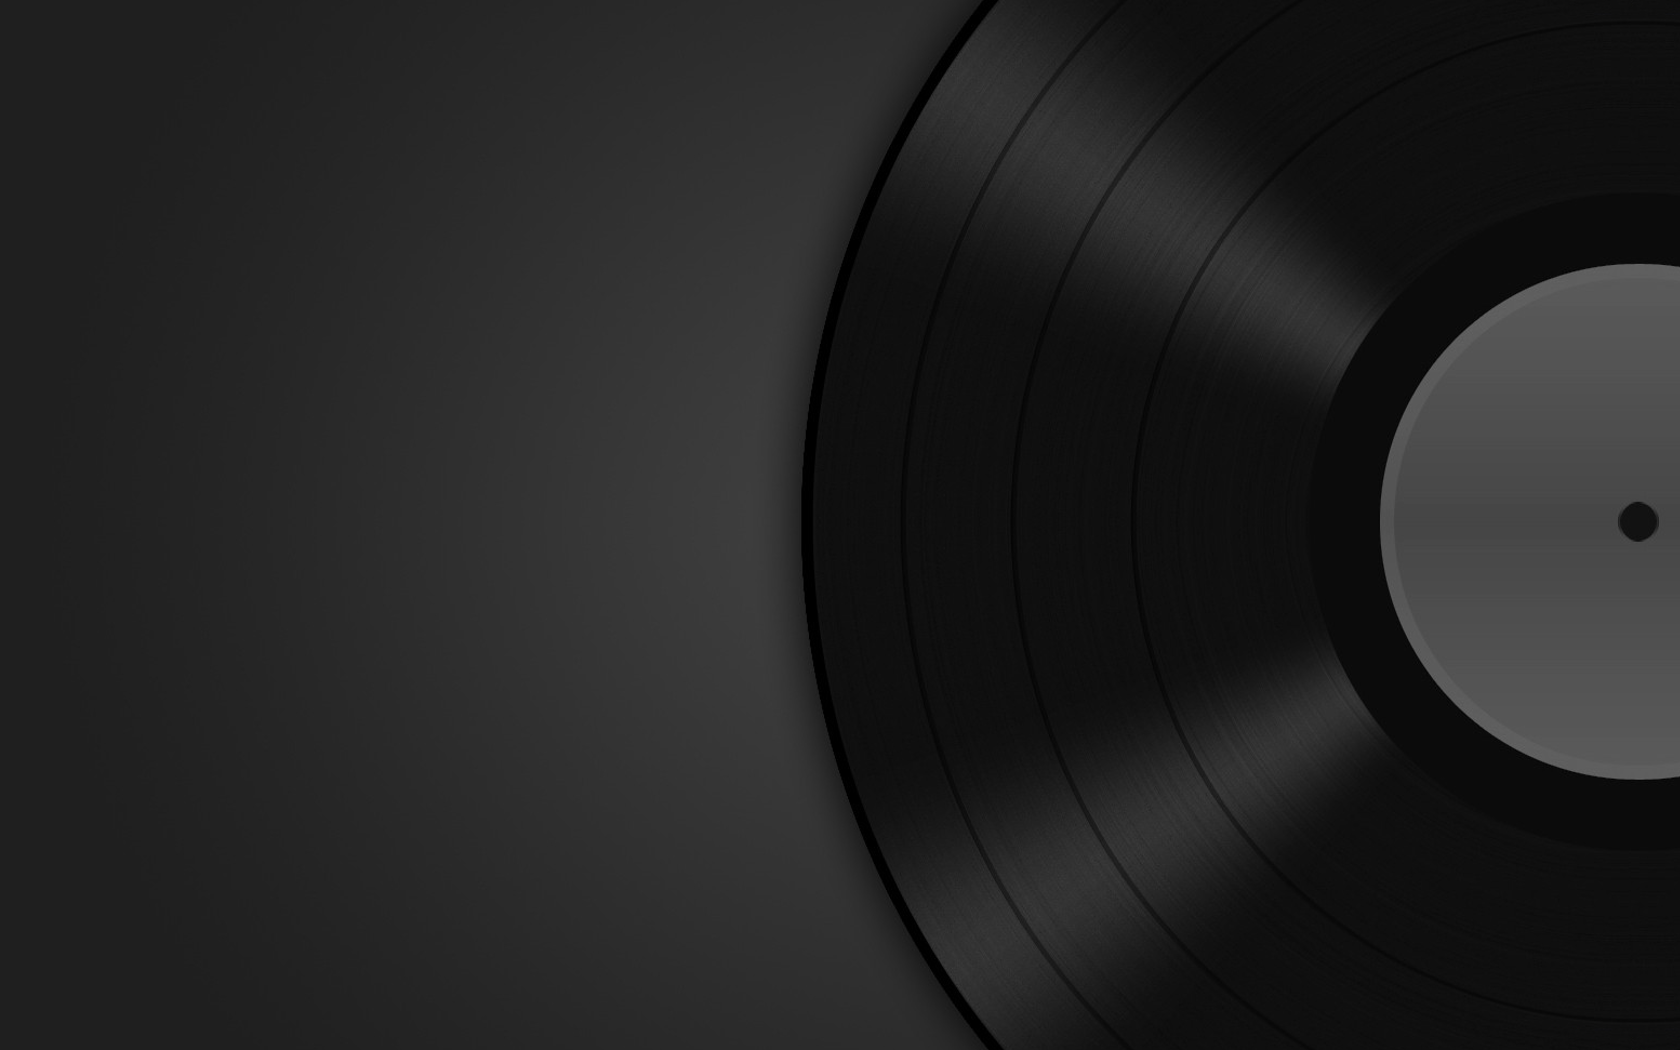 Black And White Music Wallpaper